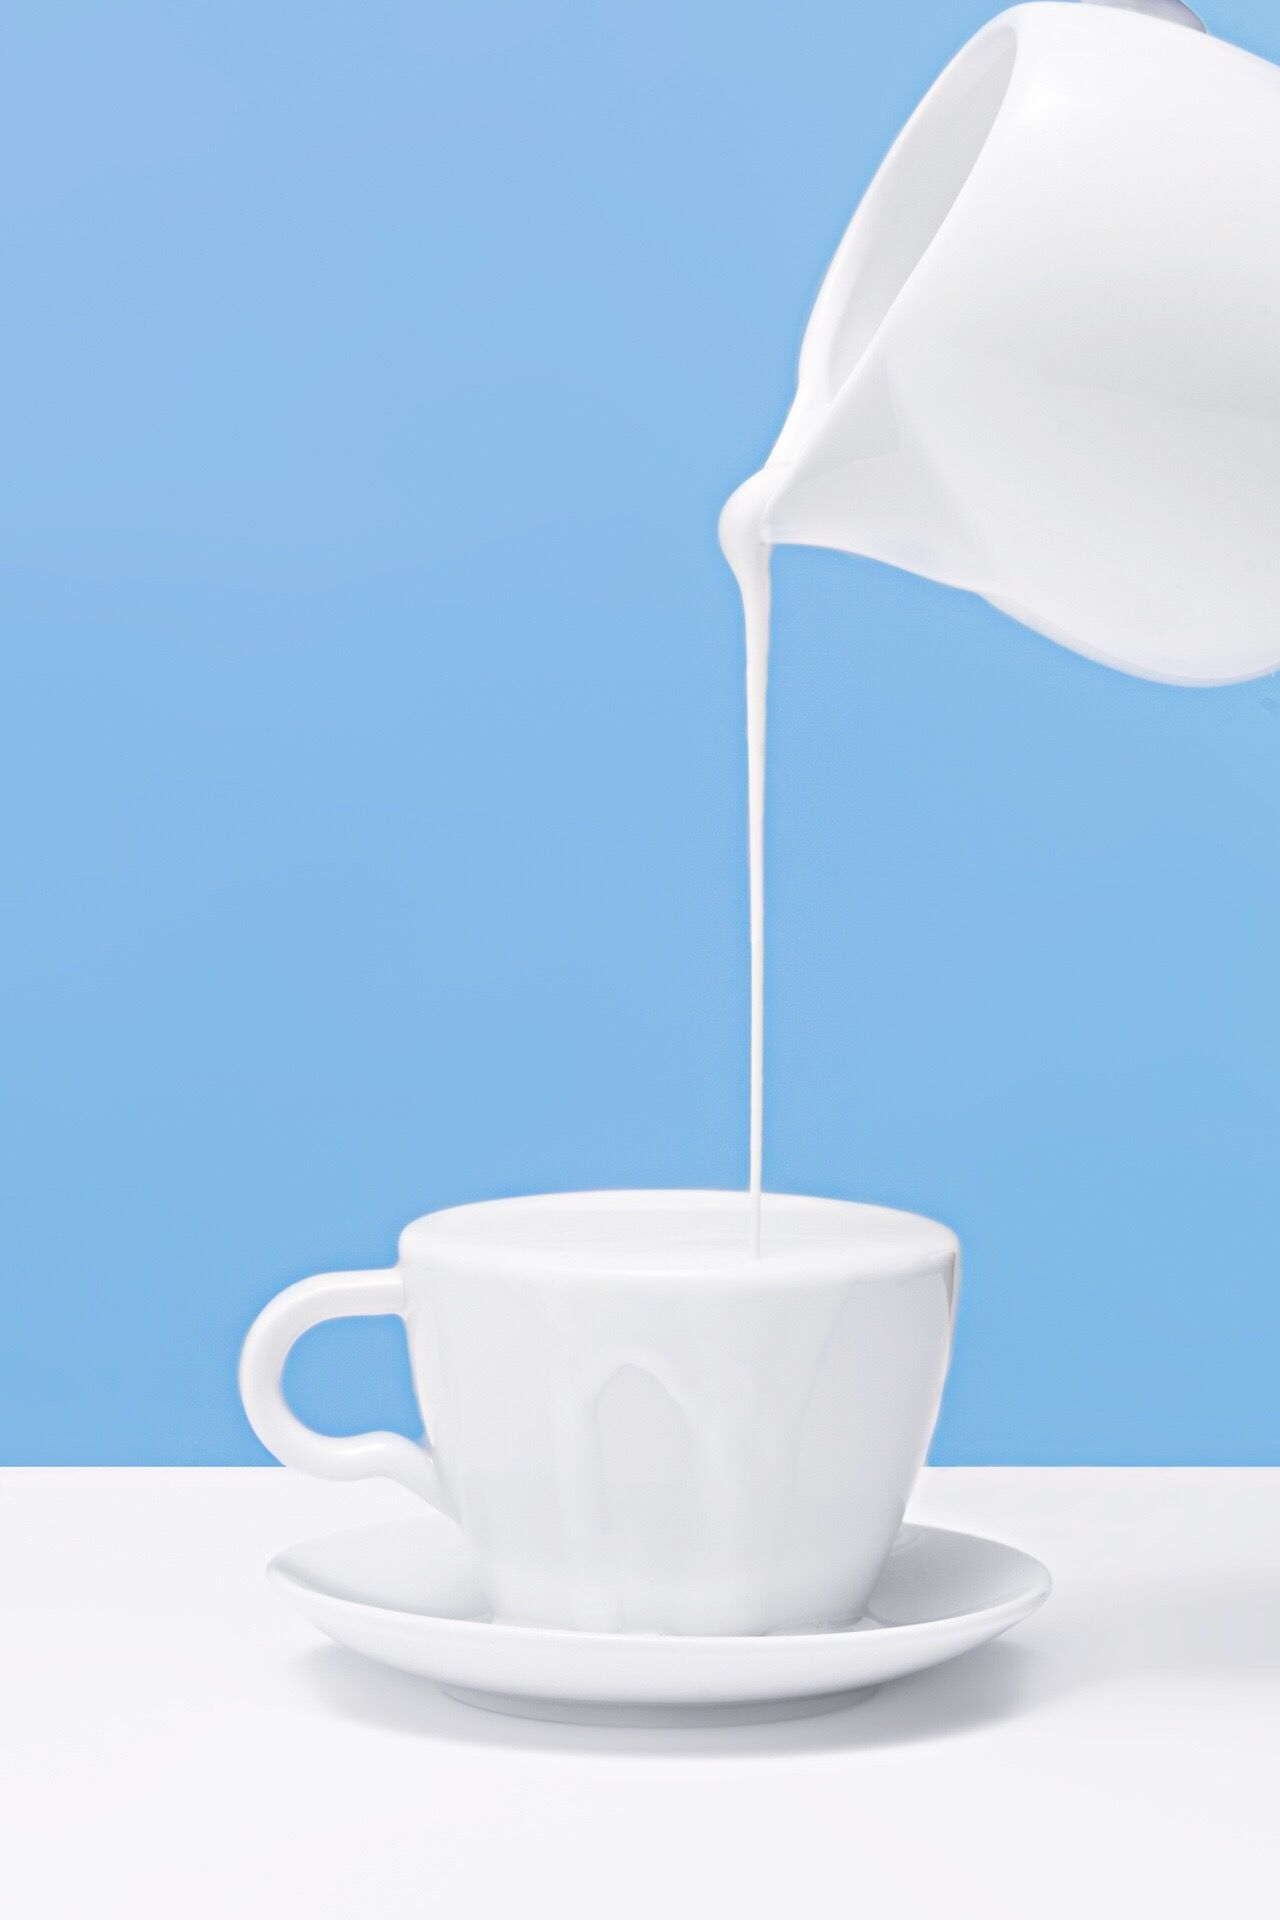 Close-up of jug pouring milk into coffee cup on table